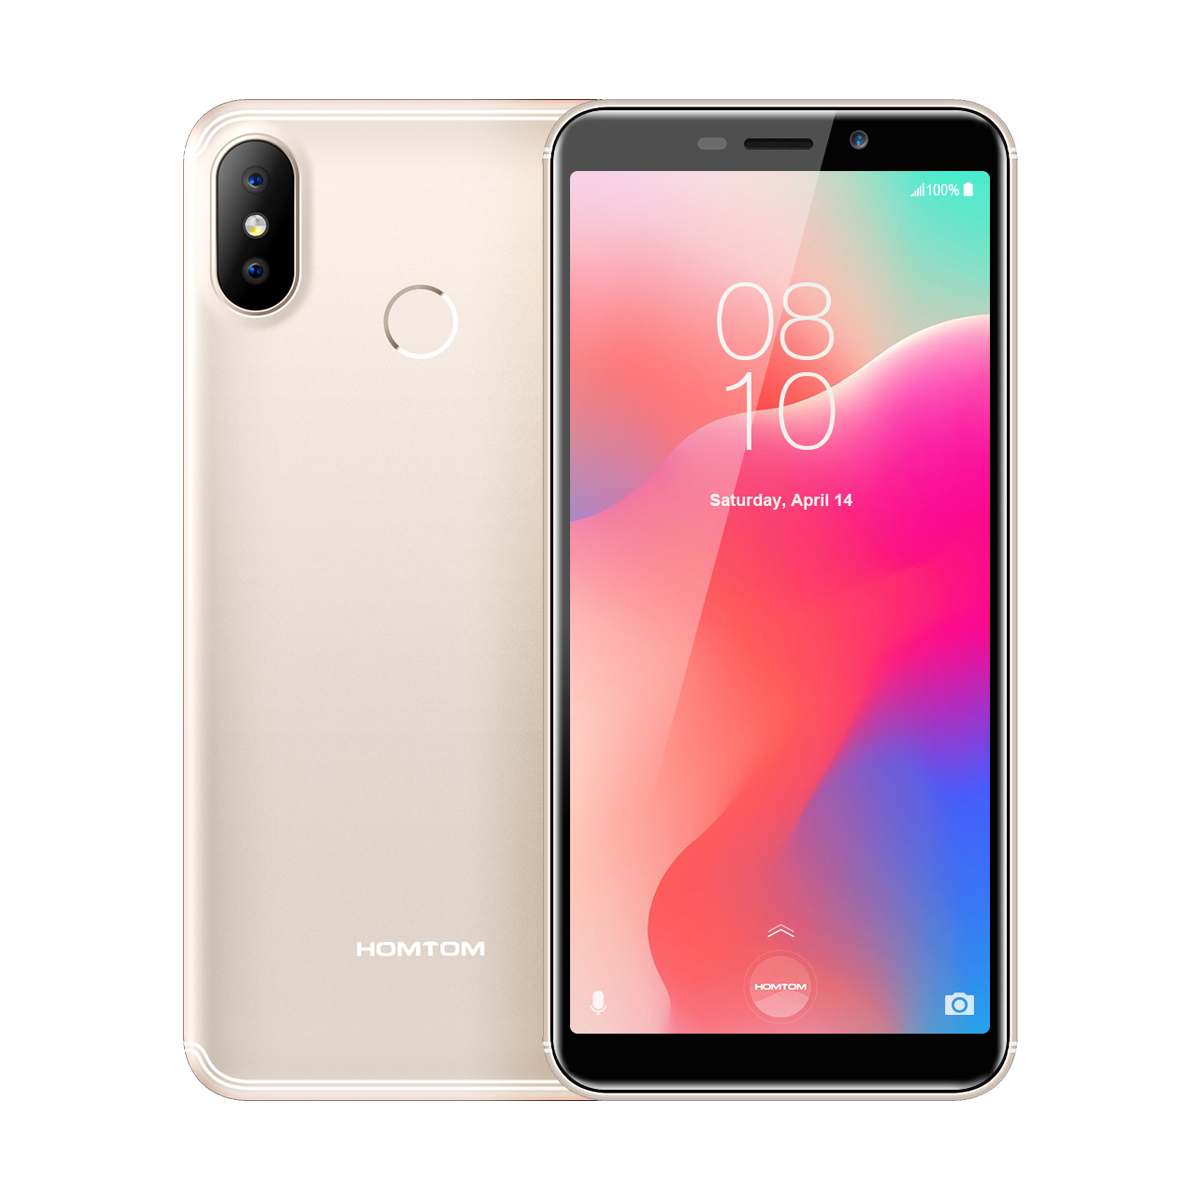 HOMTOM C1 1+16GB Mobile Phone Gold